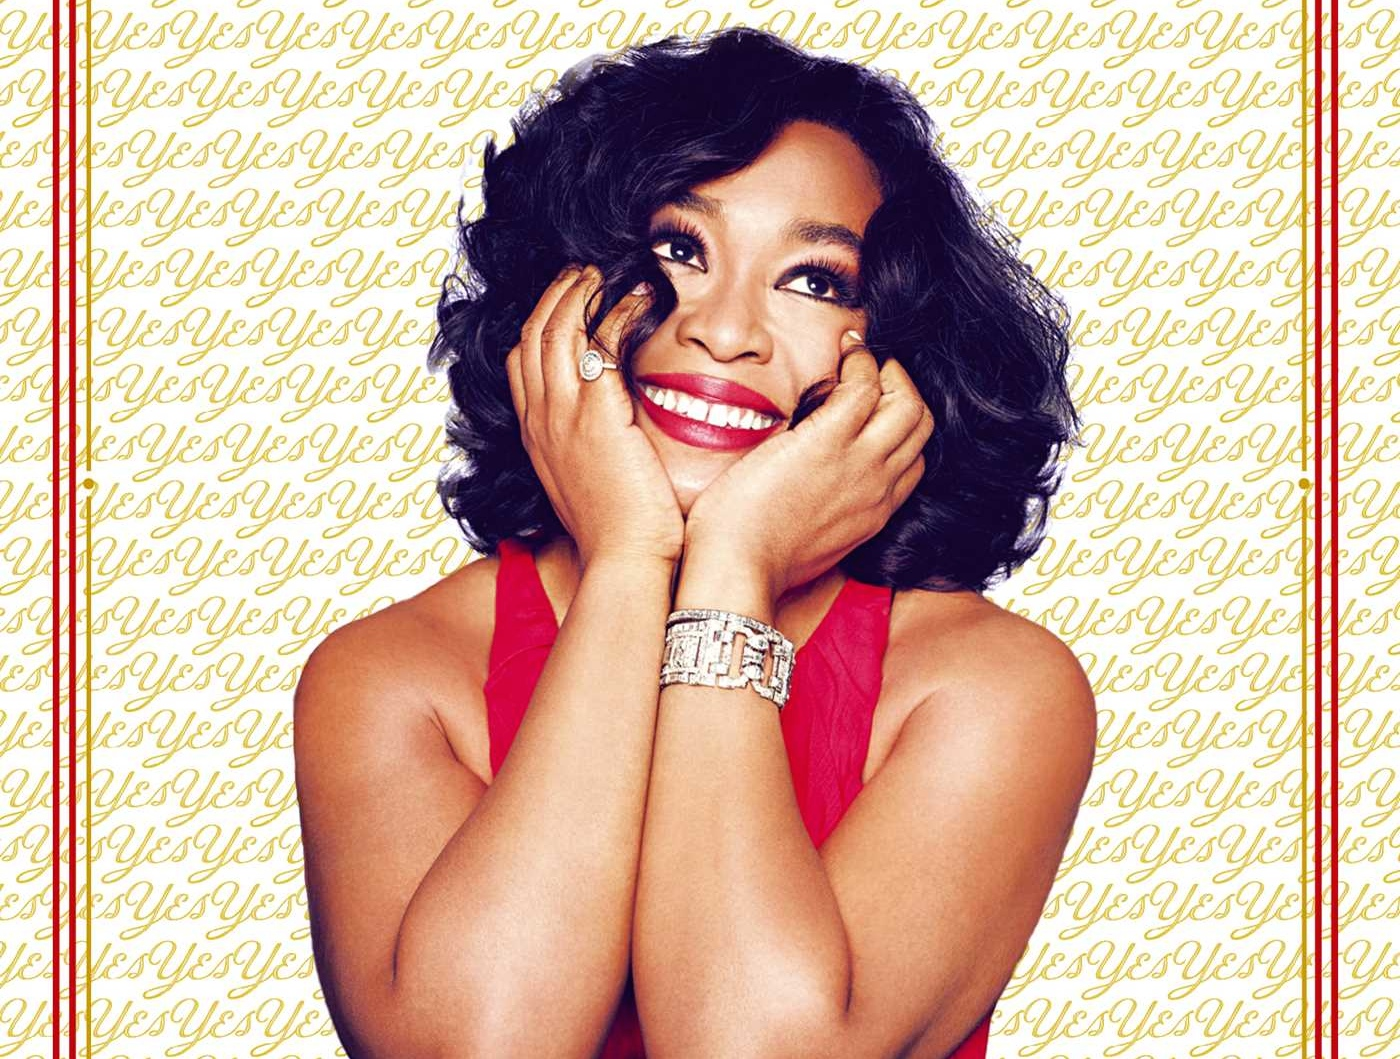 Why we're fully into Shonda Rhimes' inspiring new book, 'Year of Yes'